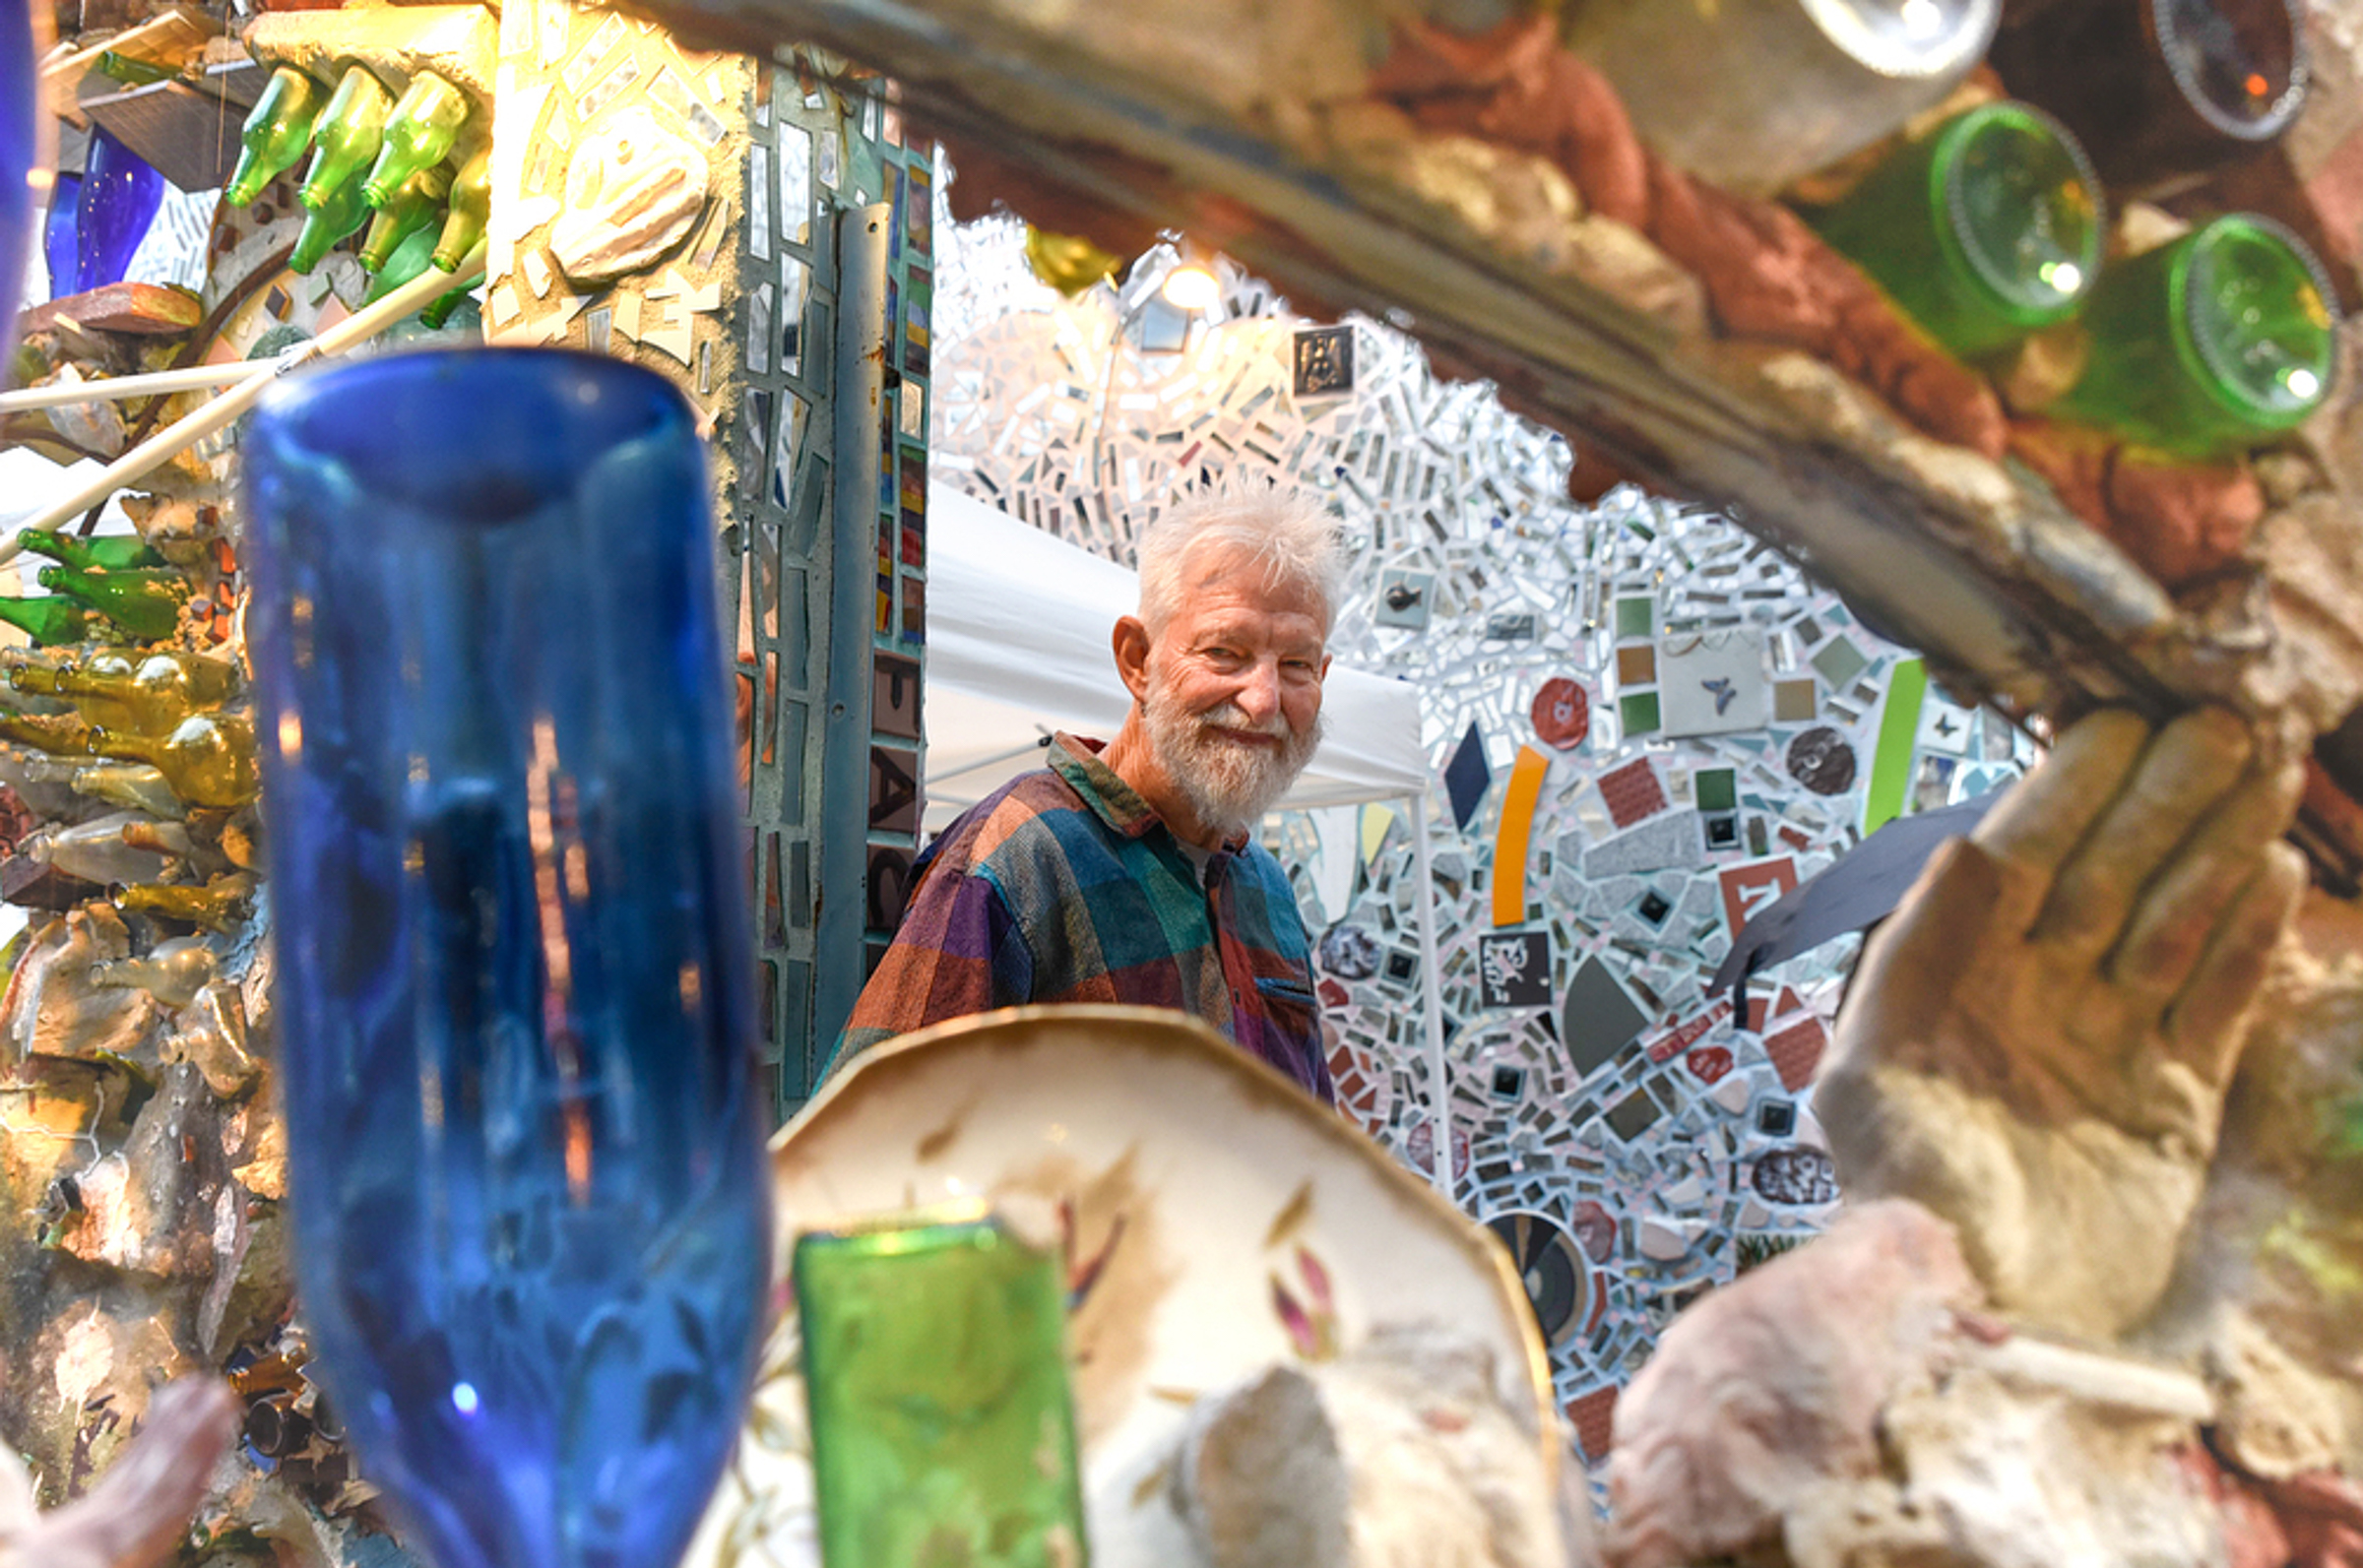 Isiah Zagar is the artist and mastermind behind the Magic Gardens. This South Street institution is a mosaic wonderland filled with folk art, glittery mirrors and found objects that contributed to the revival of South Street. Zagar made an appearance last night at the monthly Twilight in the Gardens event on June 23, 2018. Brianna Spause / This Is Philly